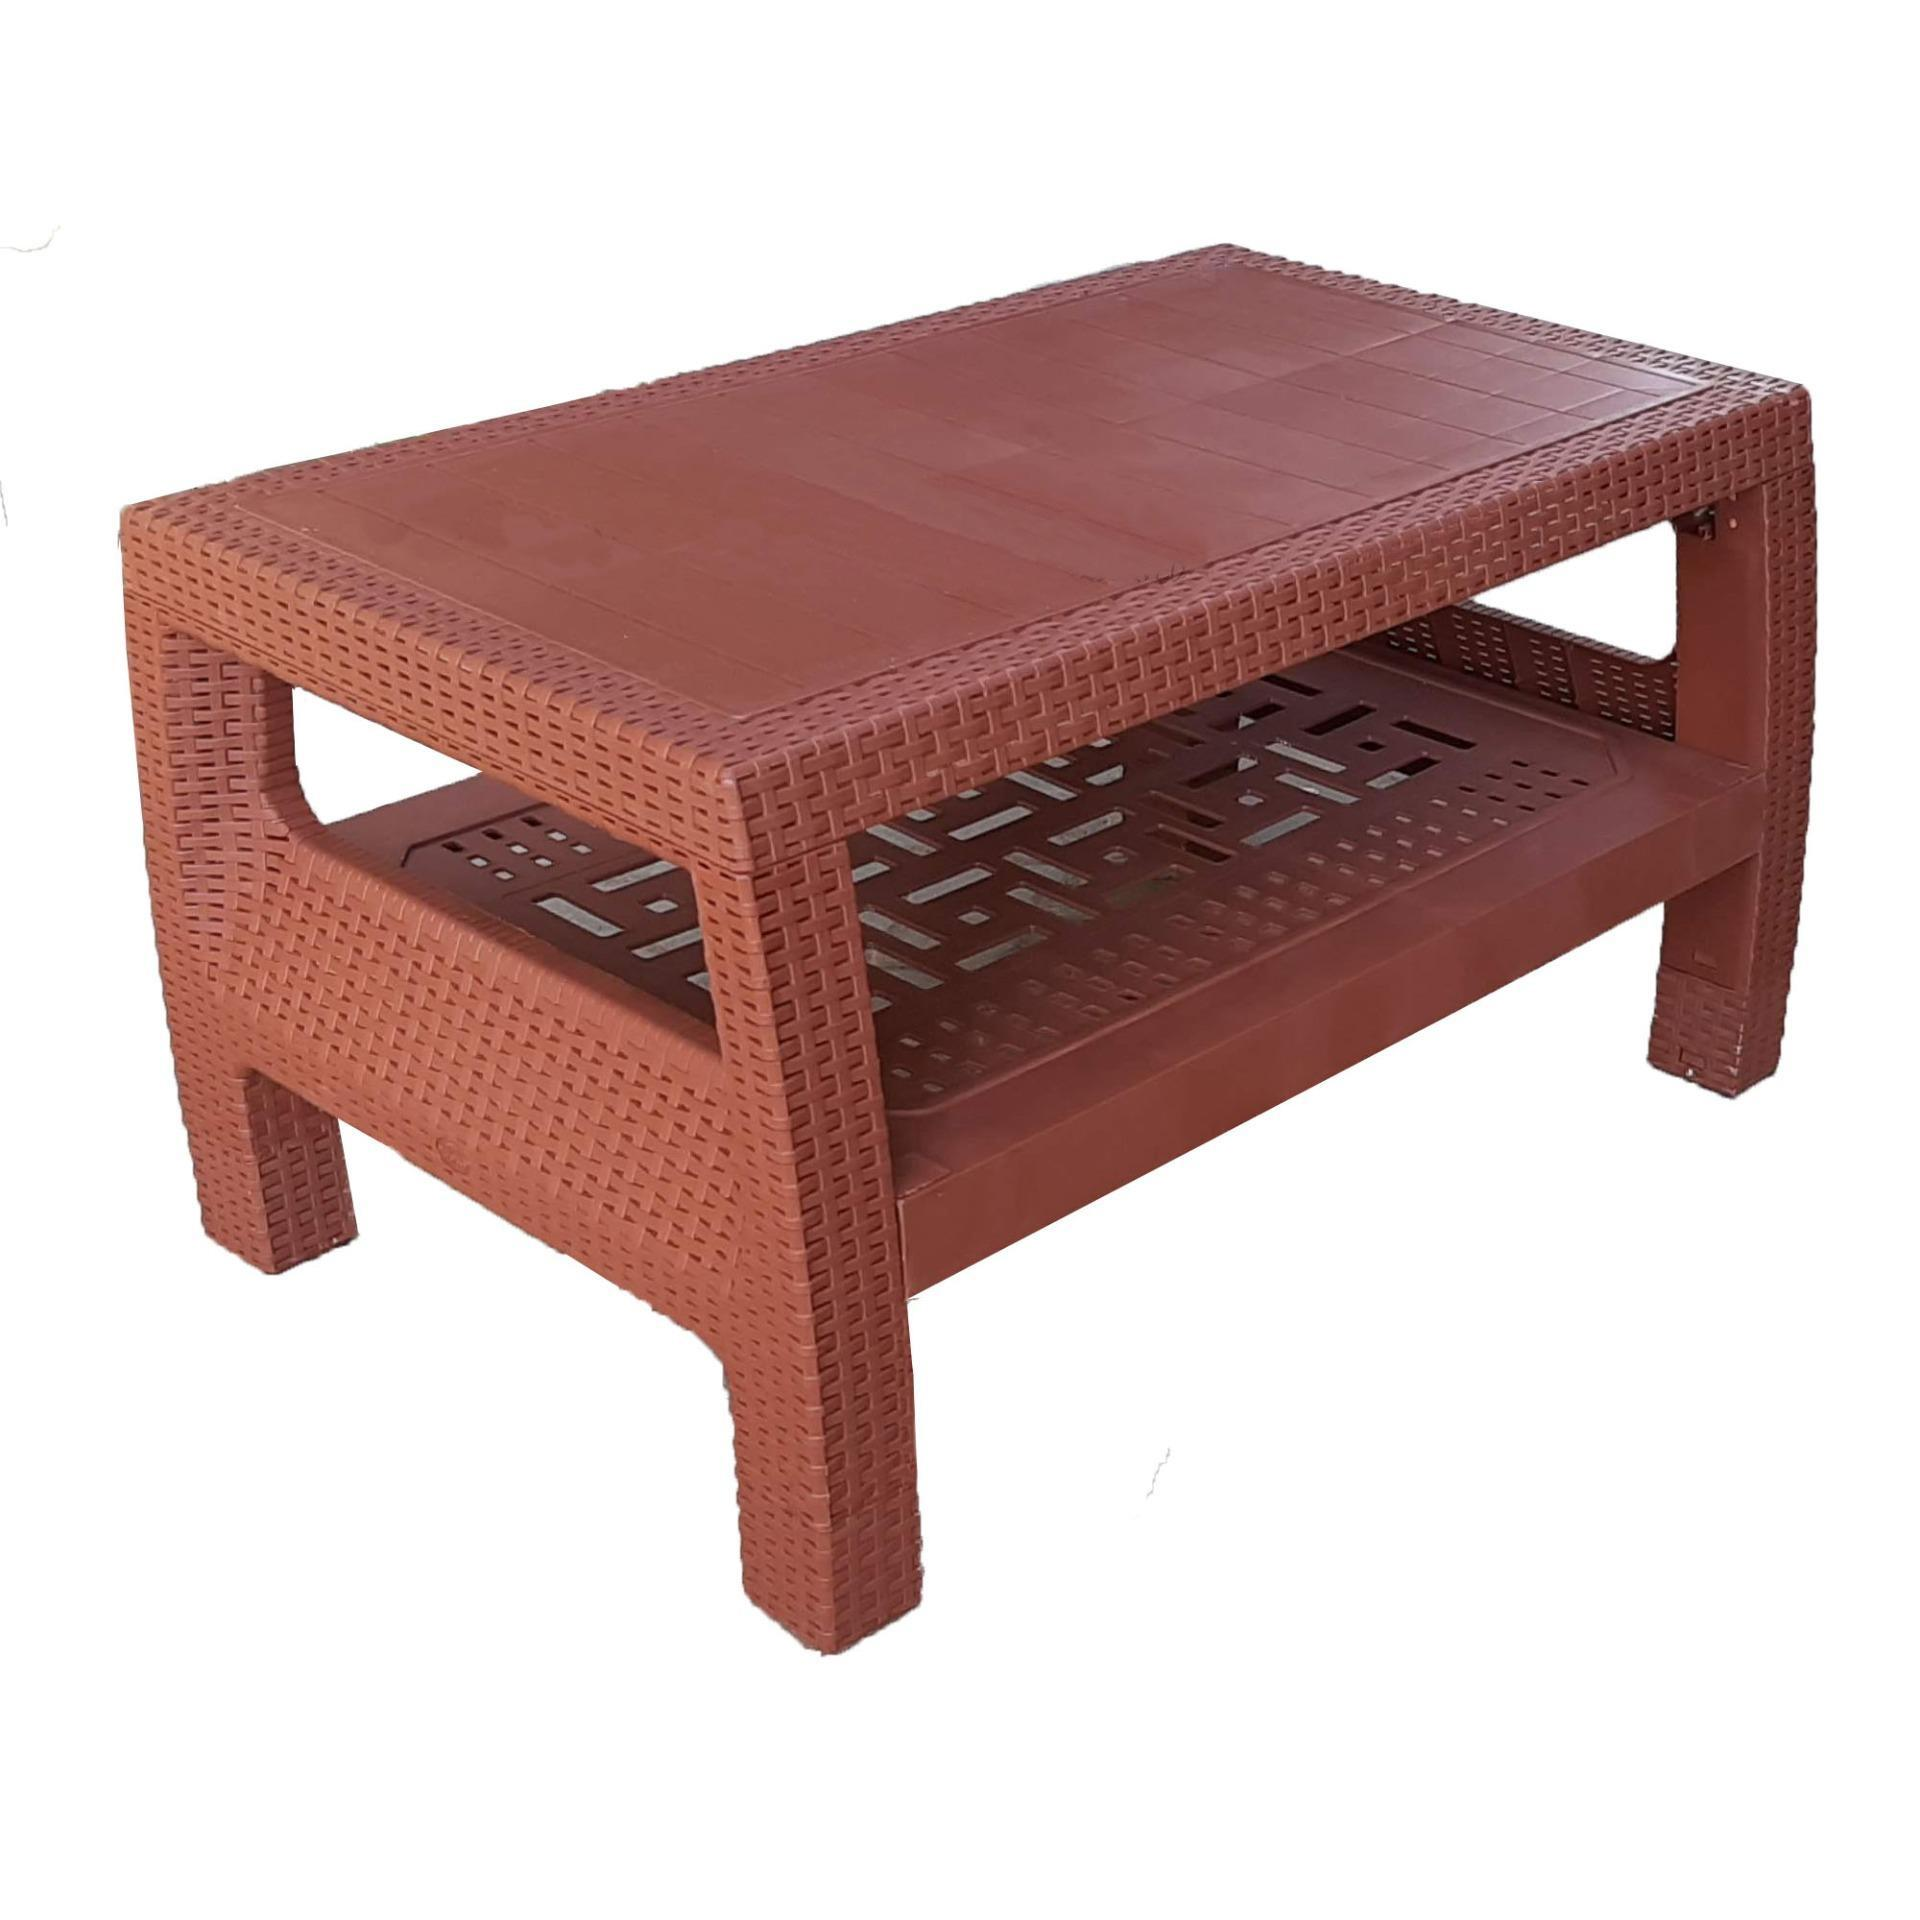 Online furniture shopping at urban galleria is easier than ever. Cool Boss Plastic Sofa Set Price In Pakistan - Carin Scat